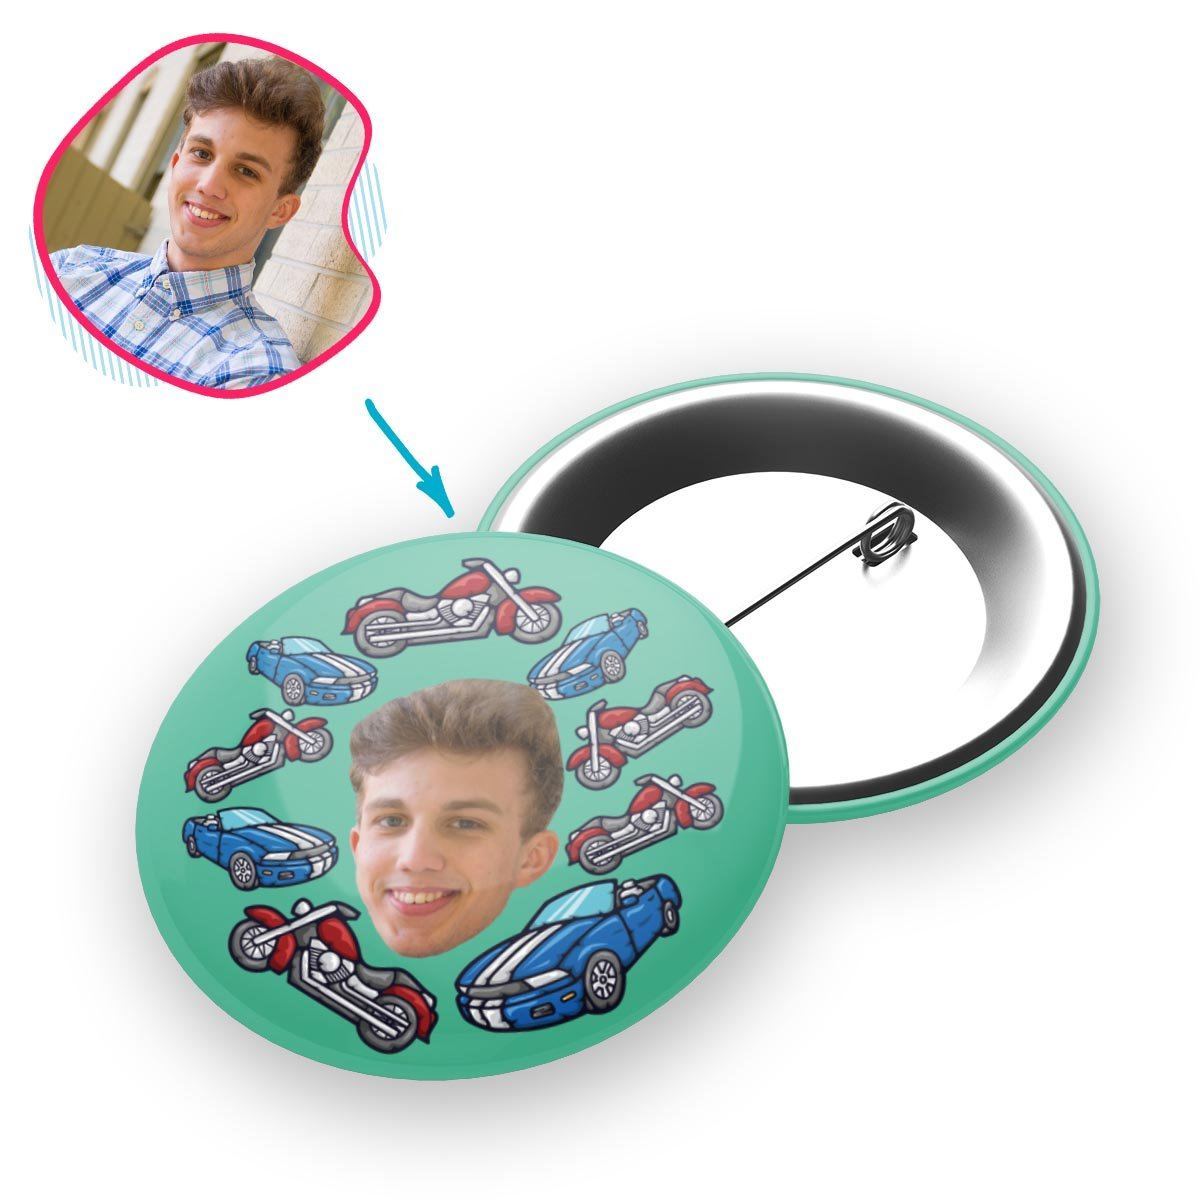 Mint Cars & Motorbikes personalized pin with photo of face printed on it